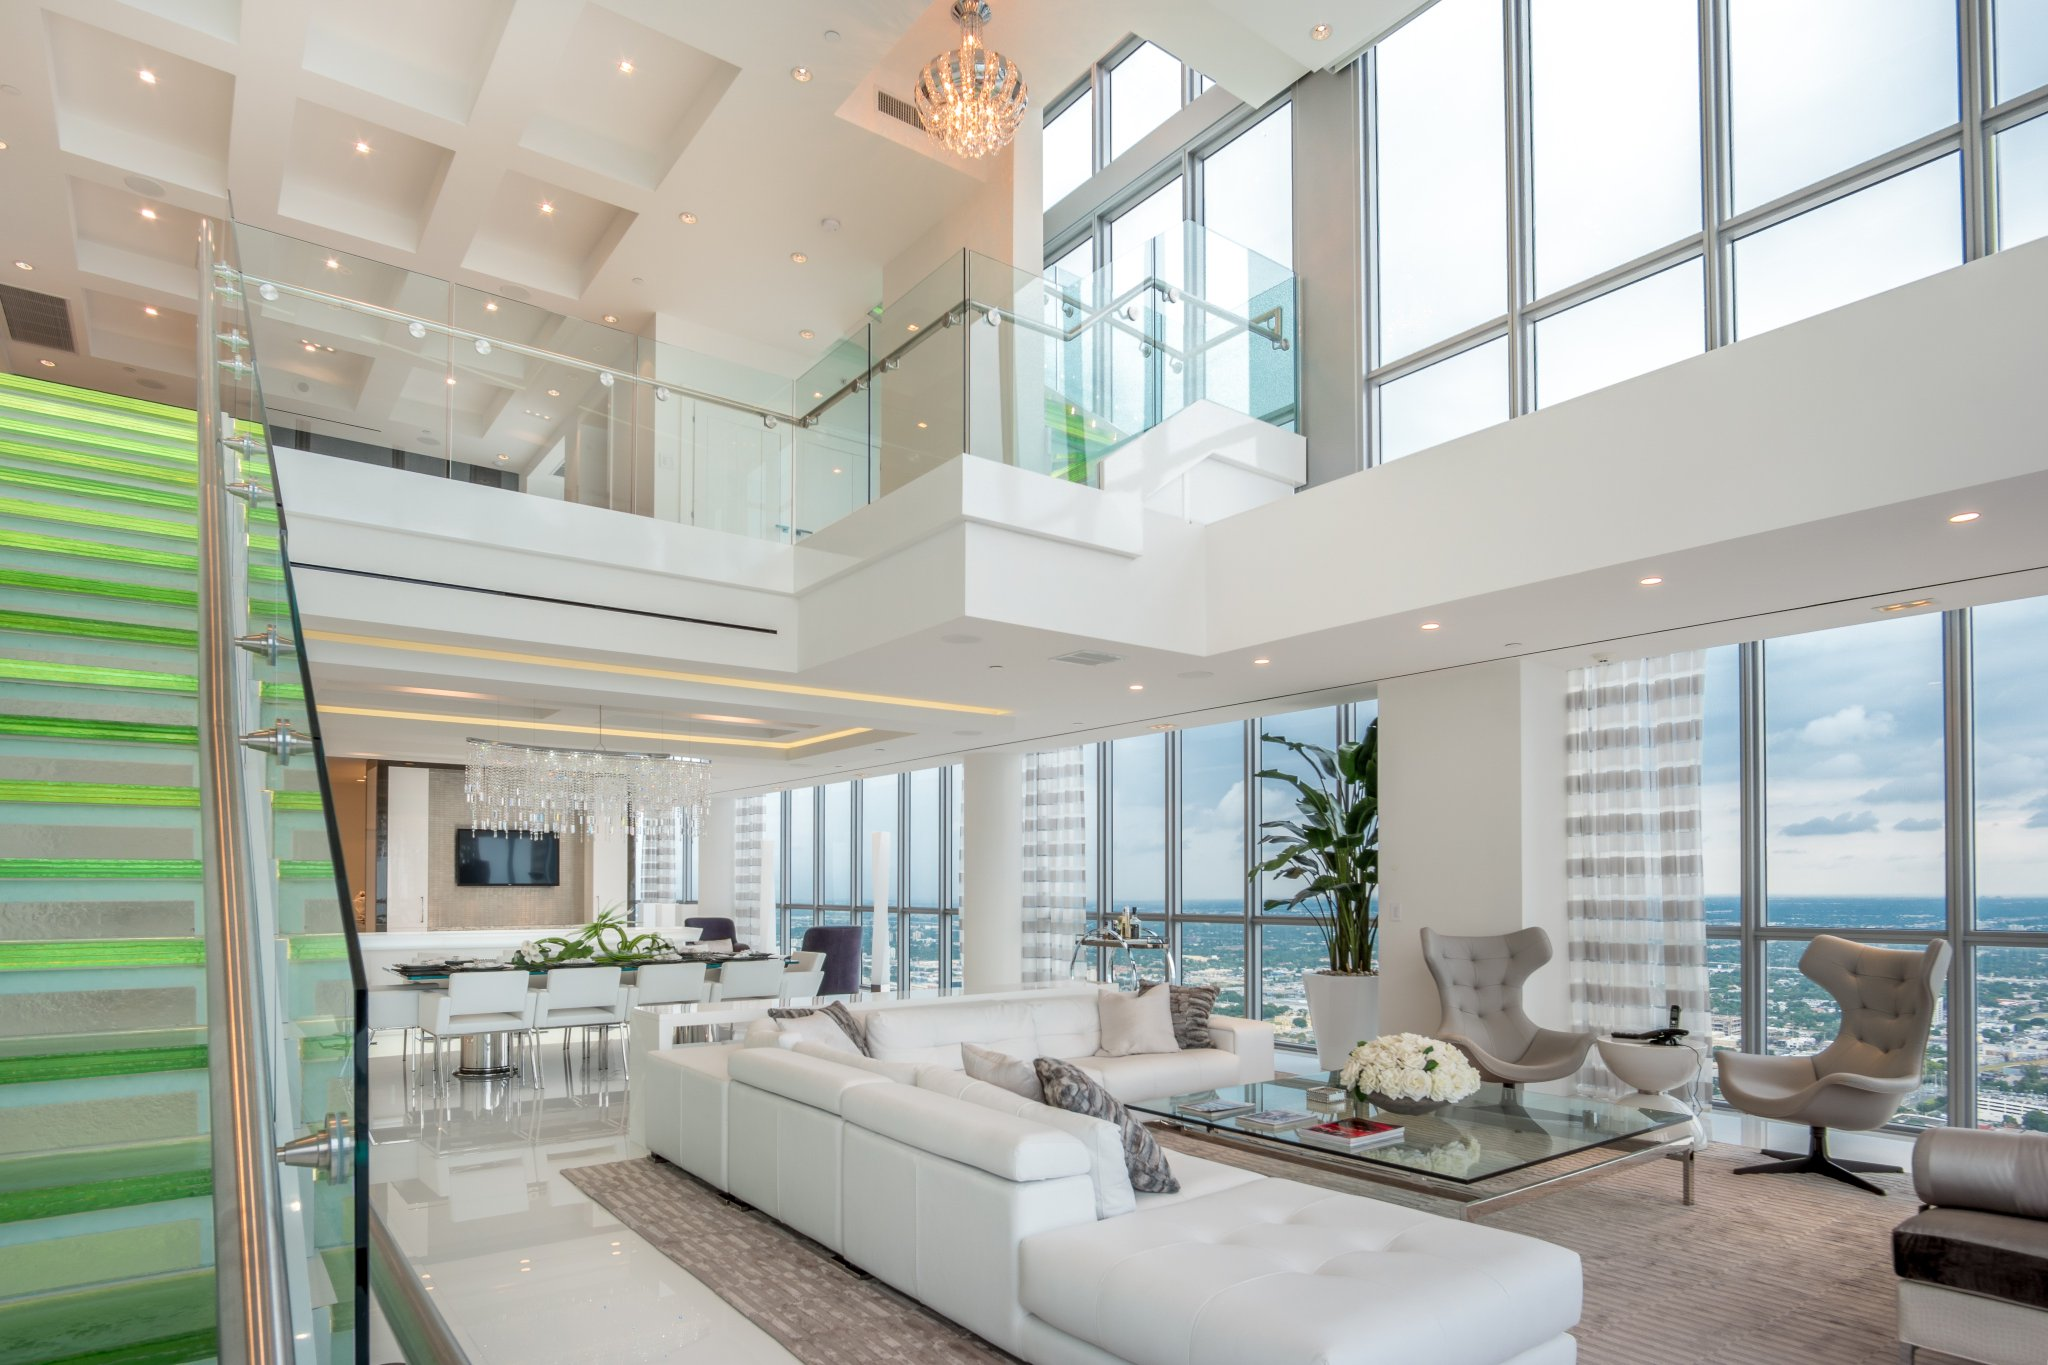 Miami Penthouse With Very Tall Ceiling Oc